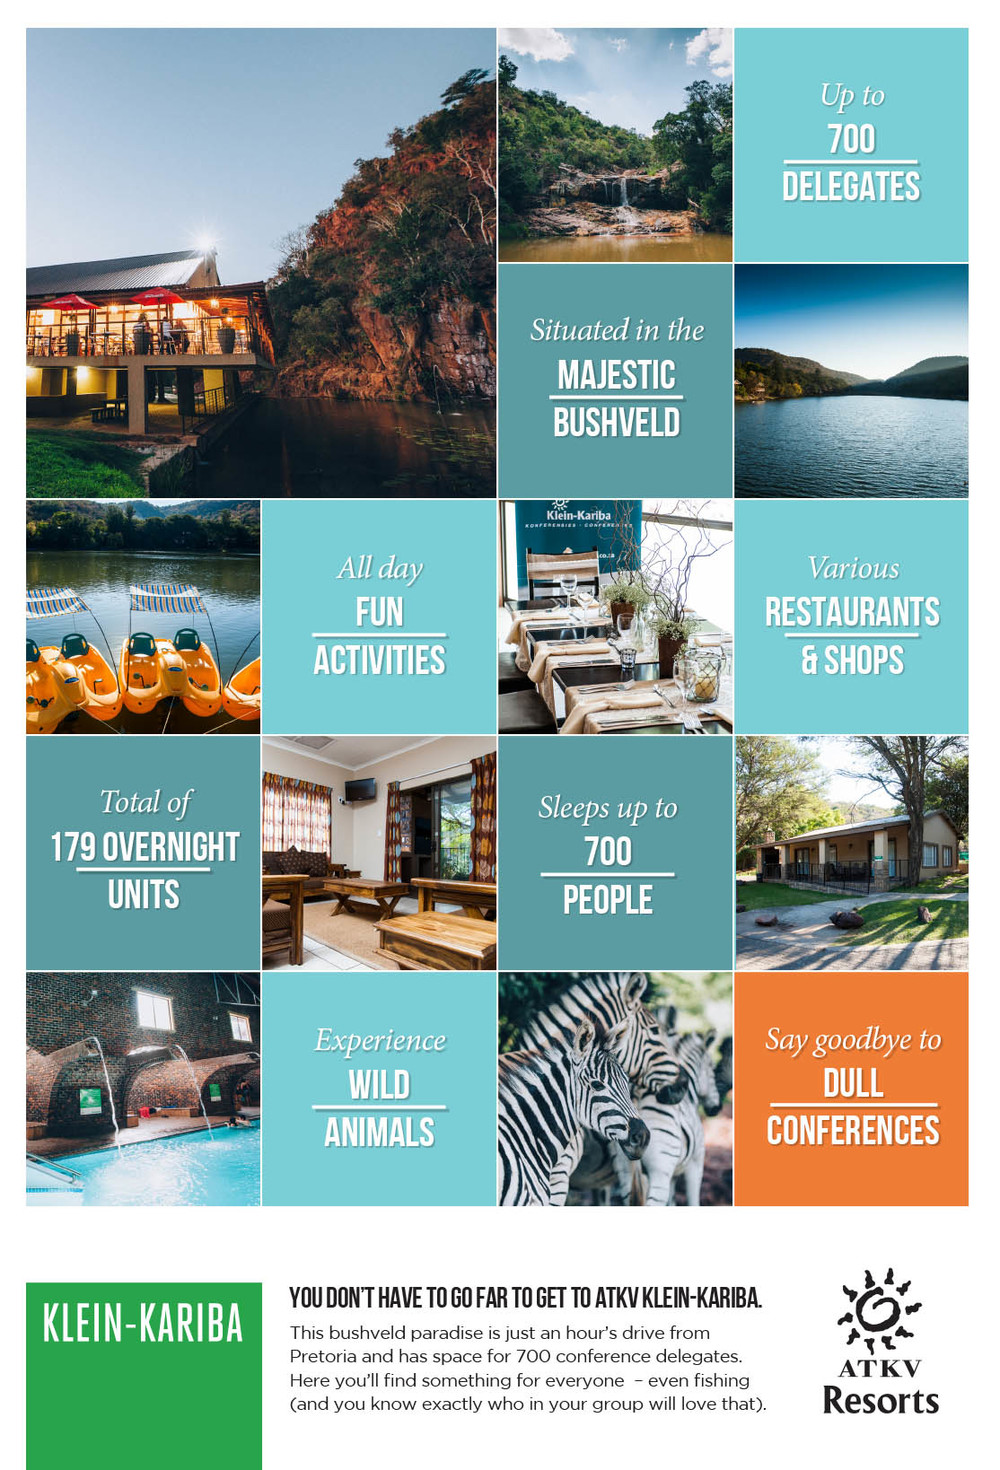 ATKV_RESORTS CONFERENCE BROCHURE_klein-kariba_B-1.jpg